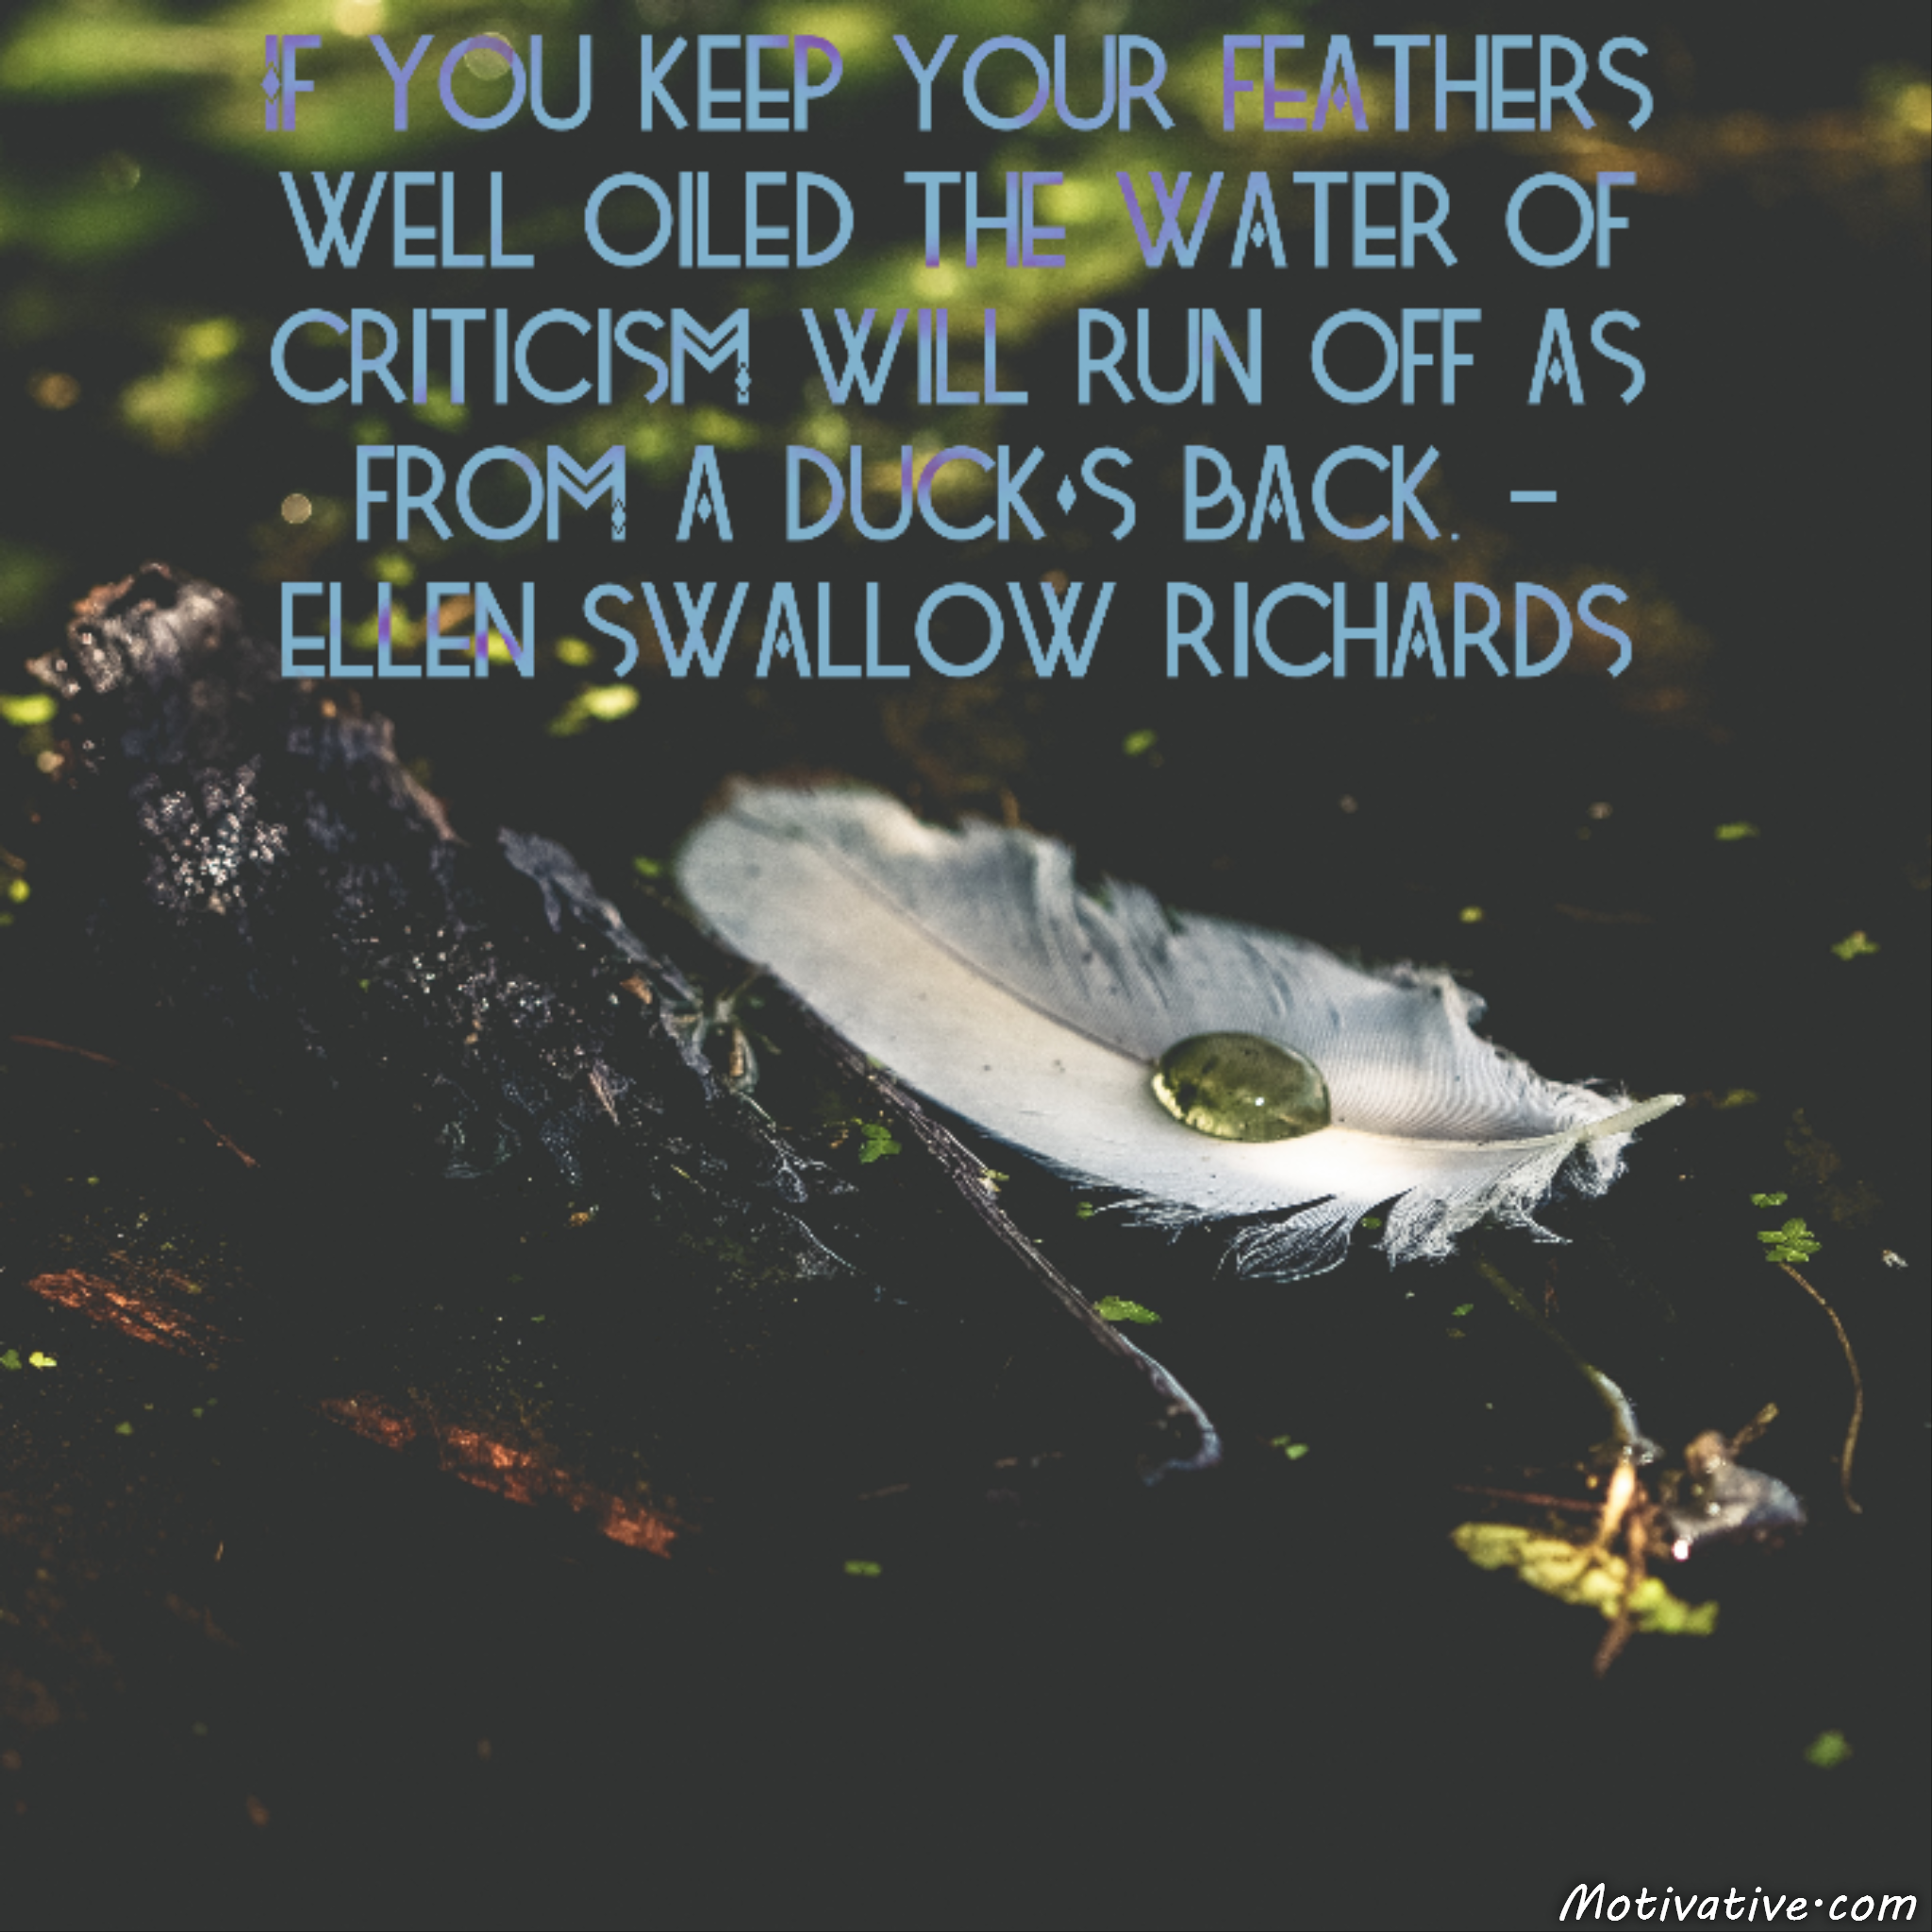 If you keep your feathers well oiled the water of criticism will run off as from a duck's back. – Ellen Swallow Richards